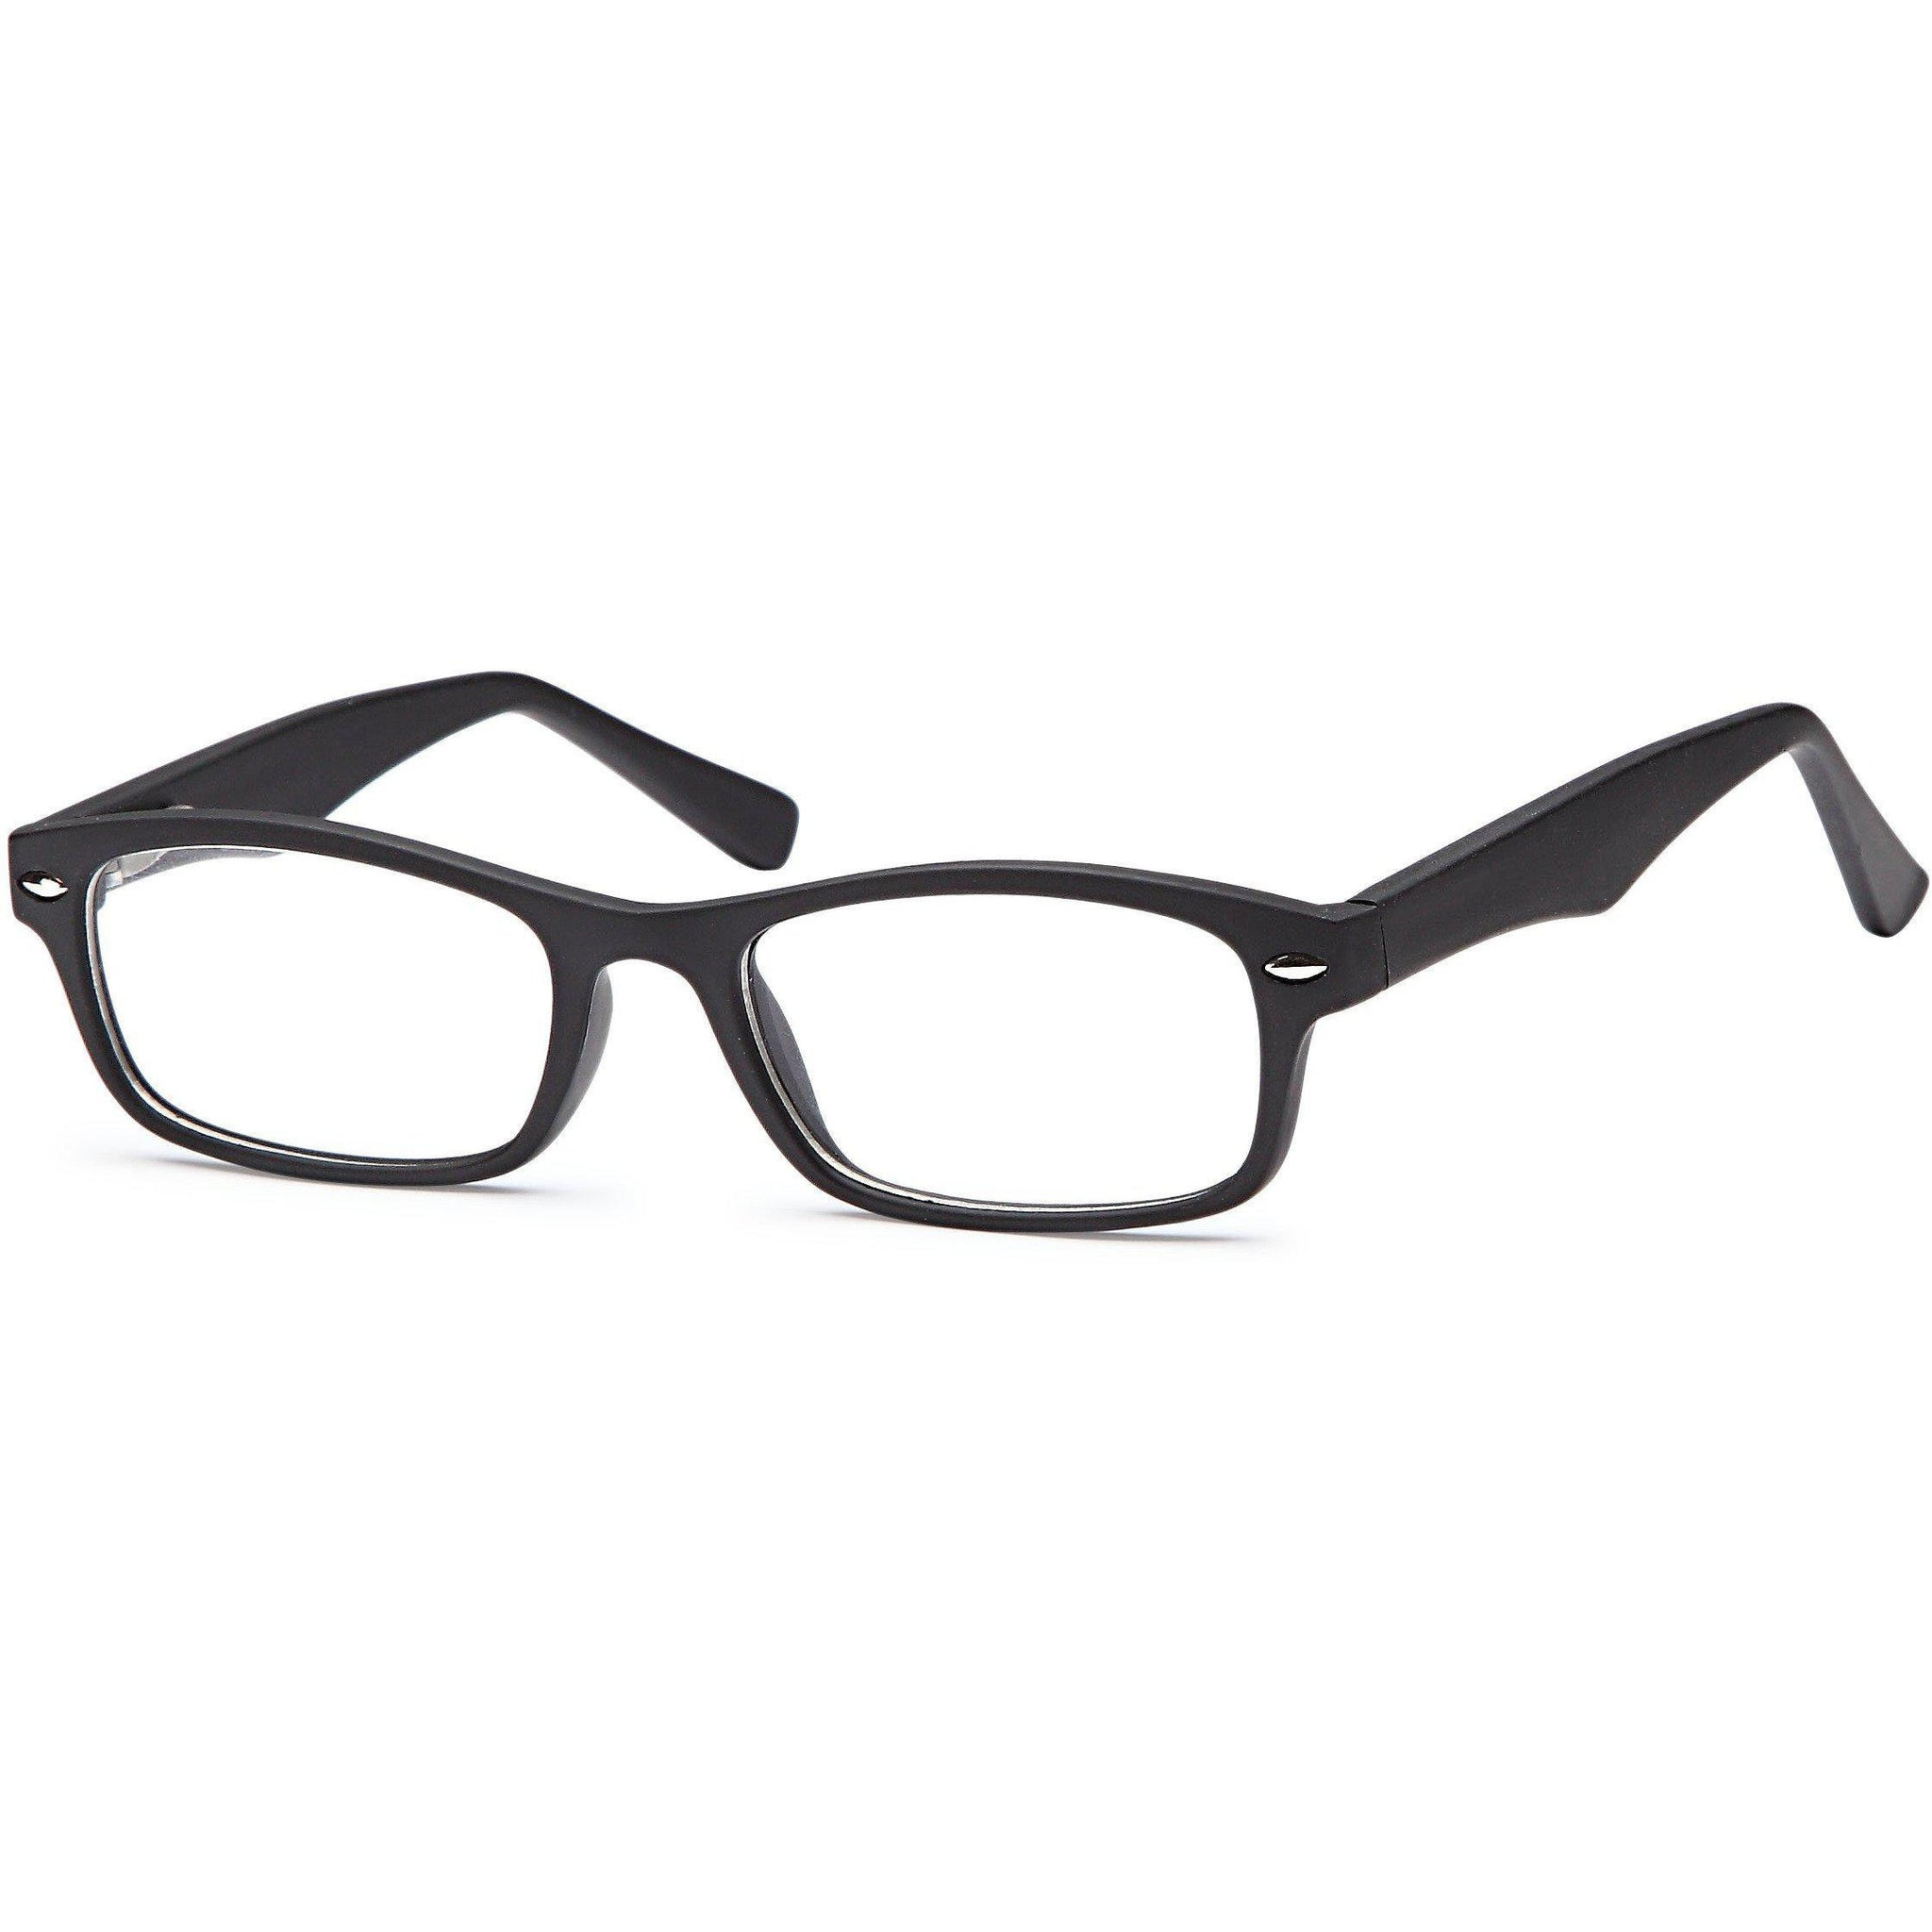 GEN Y Prescription Glasses TWEET Eyeglasses Frame